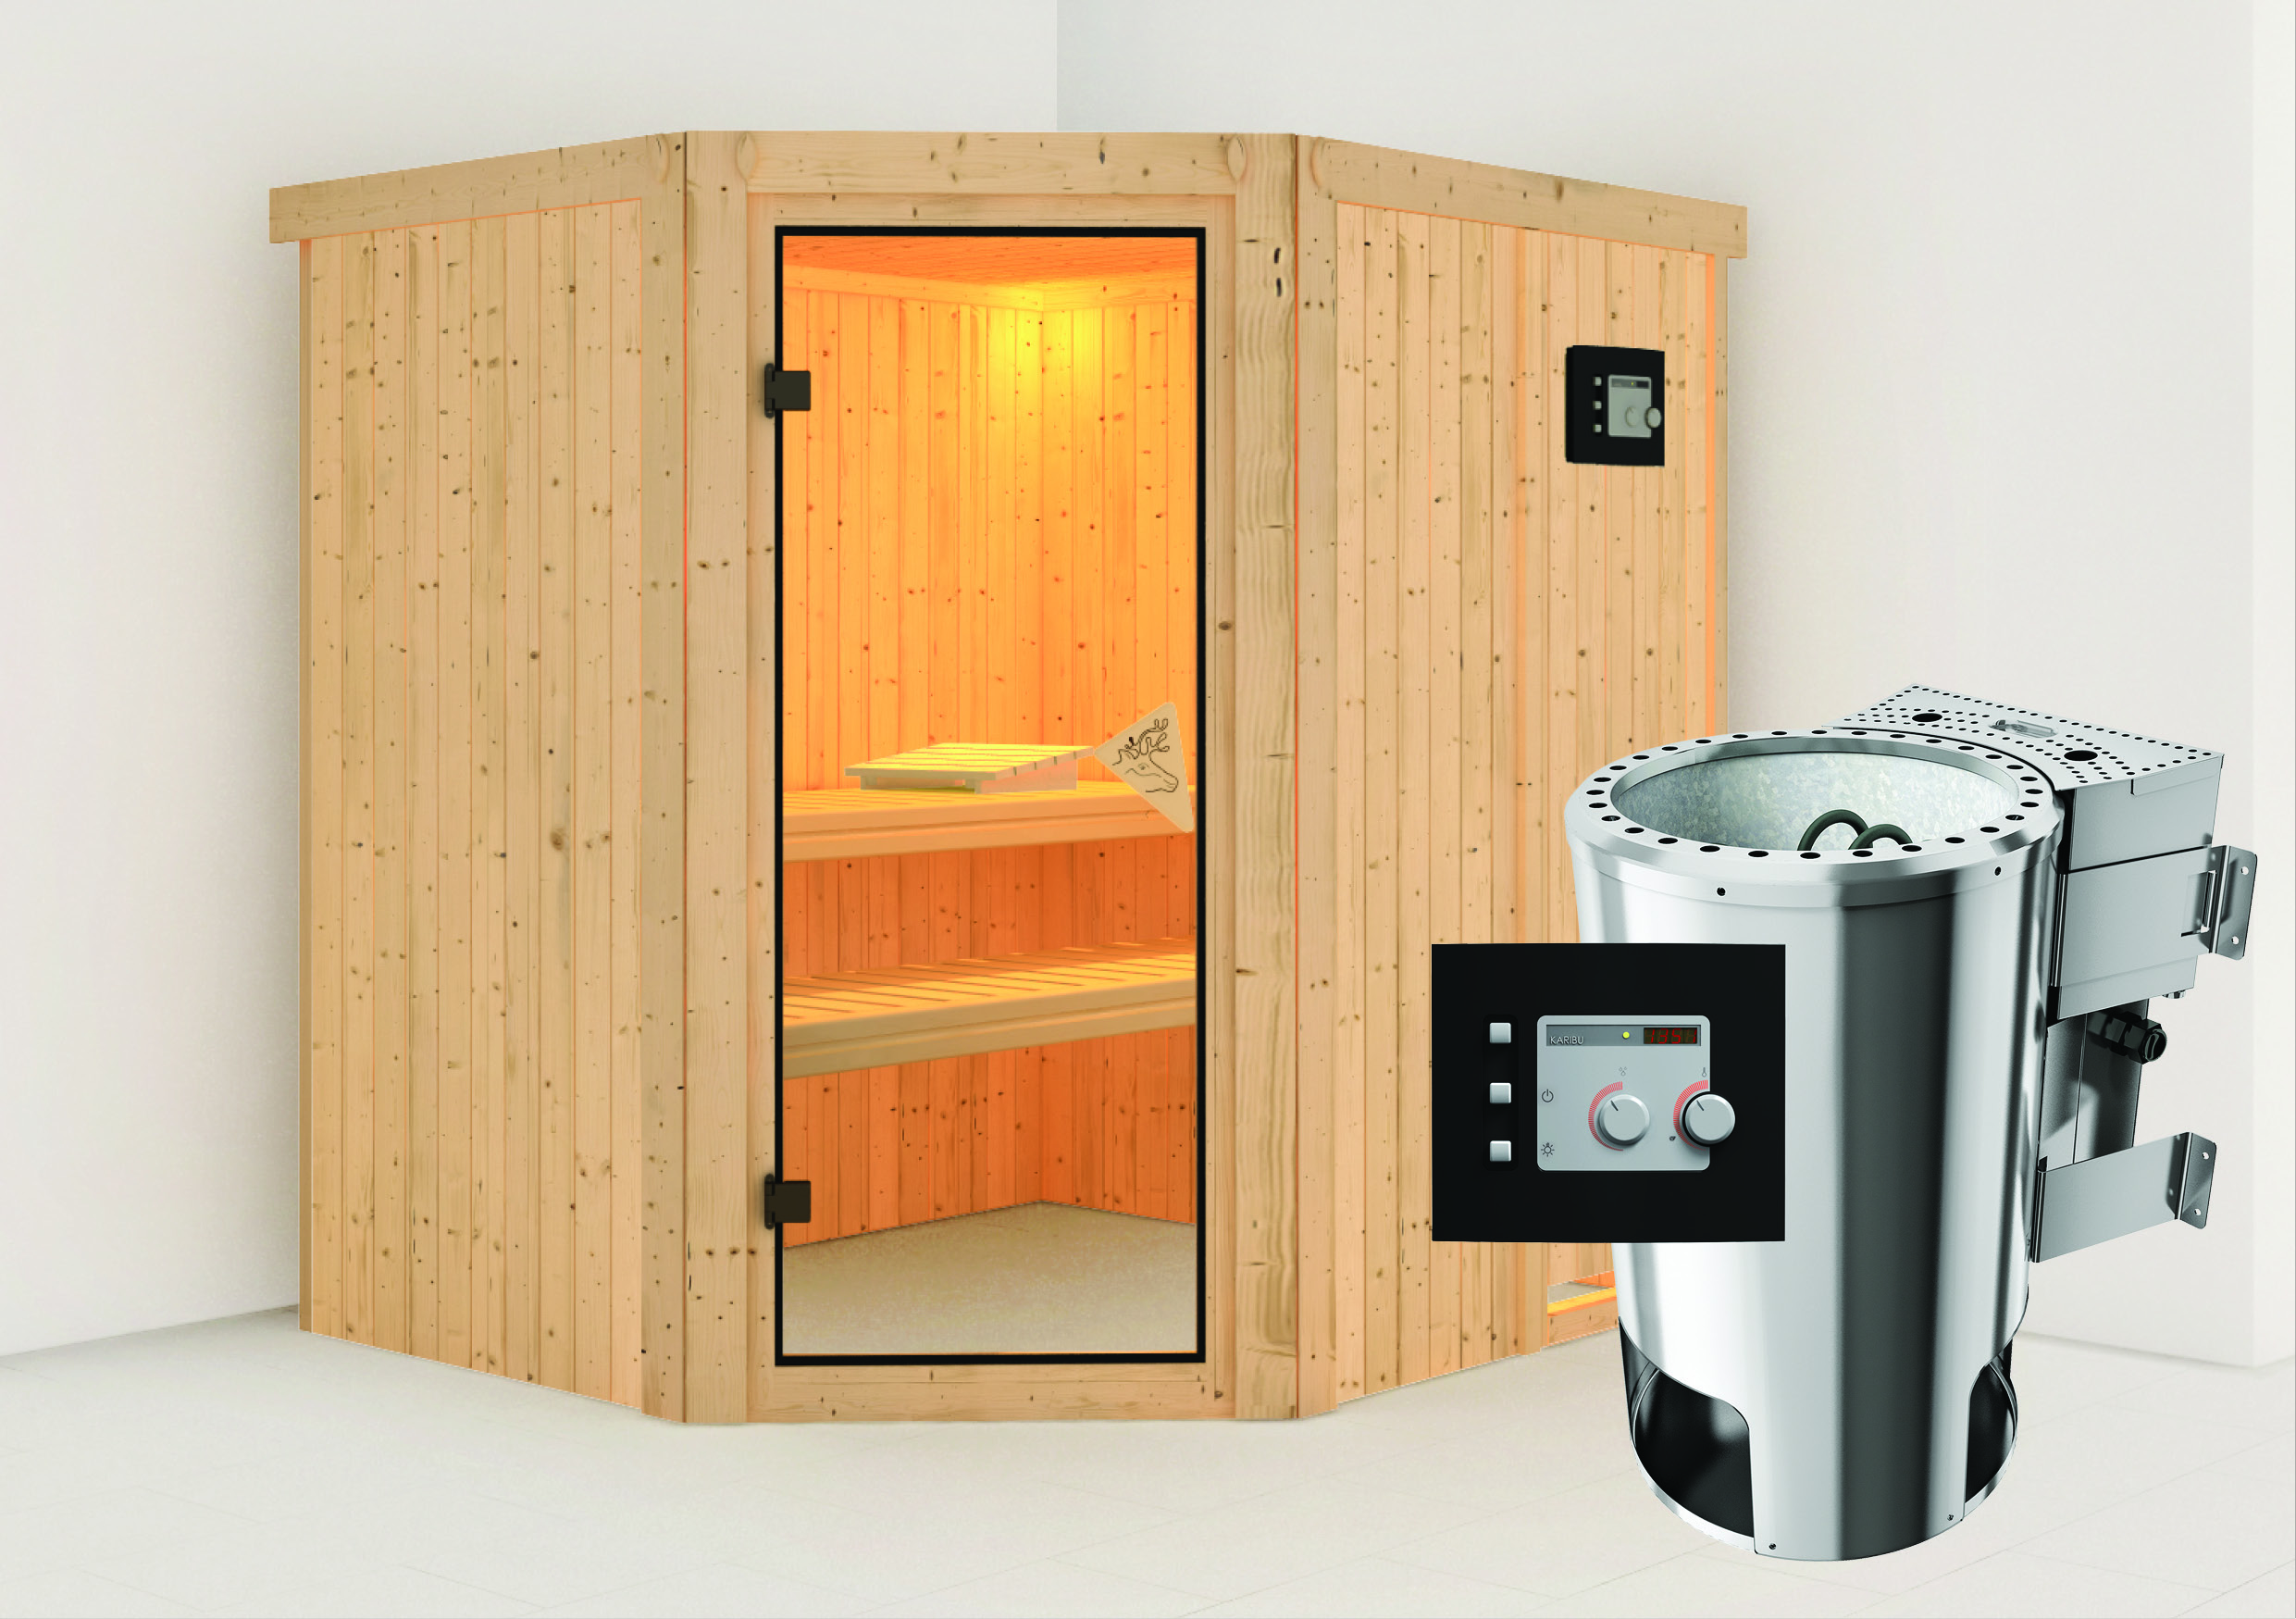 sauna vapeur lilja avec po le bio plug play 3 6 kw avec commande externe. Black Bedroom Furniture Sets. Home Design Ideas